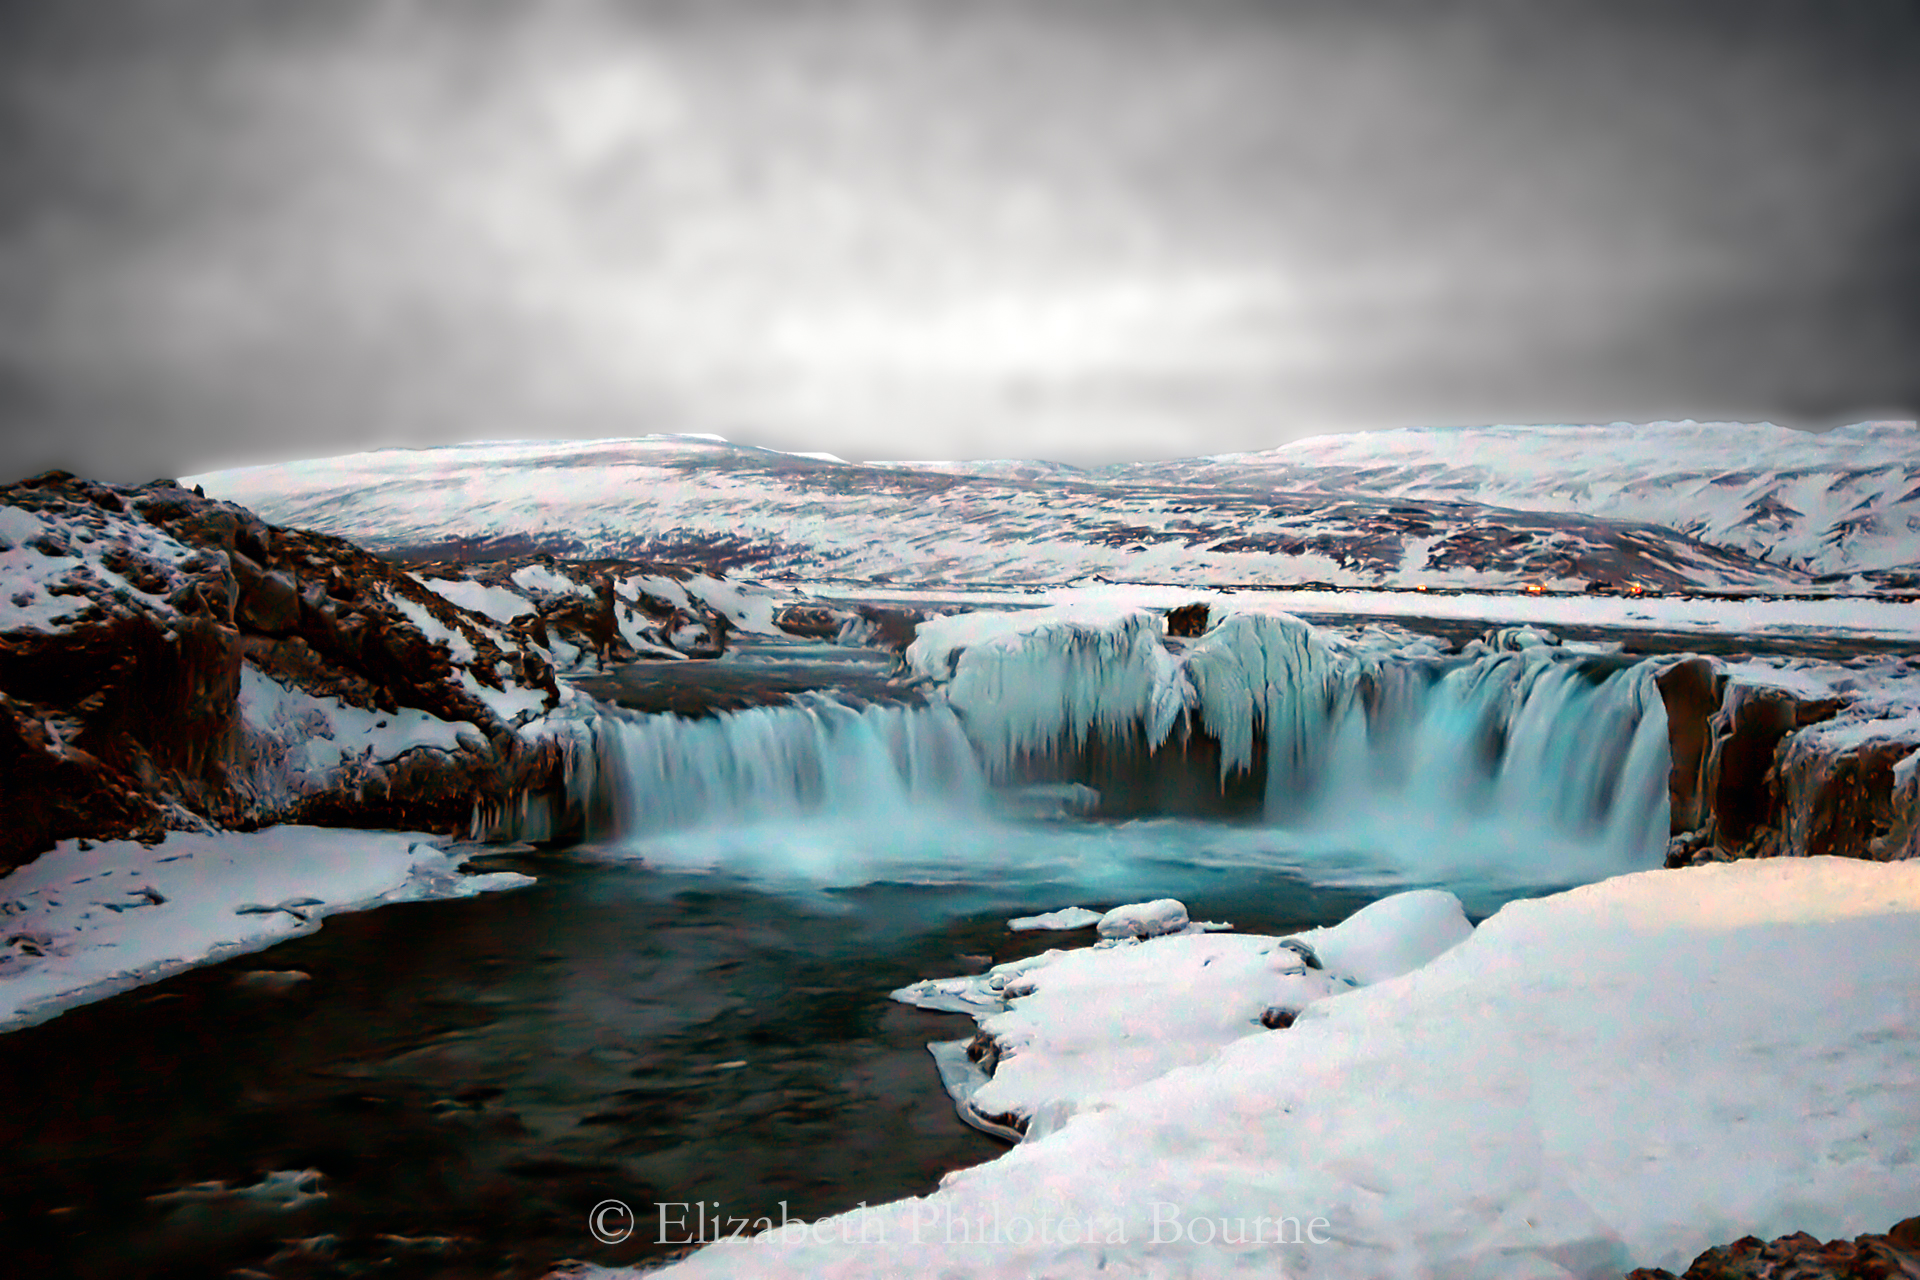 Beautiful, frozen Godafoss waterfall in winter with gray sky and snow